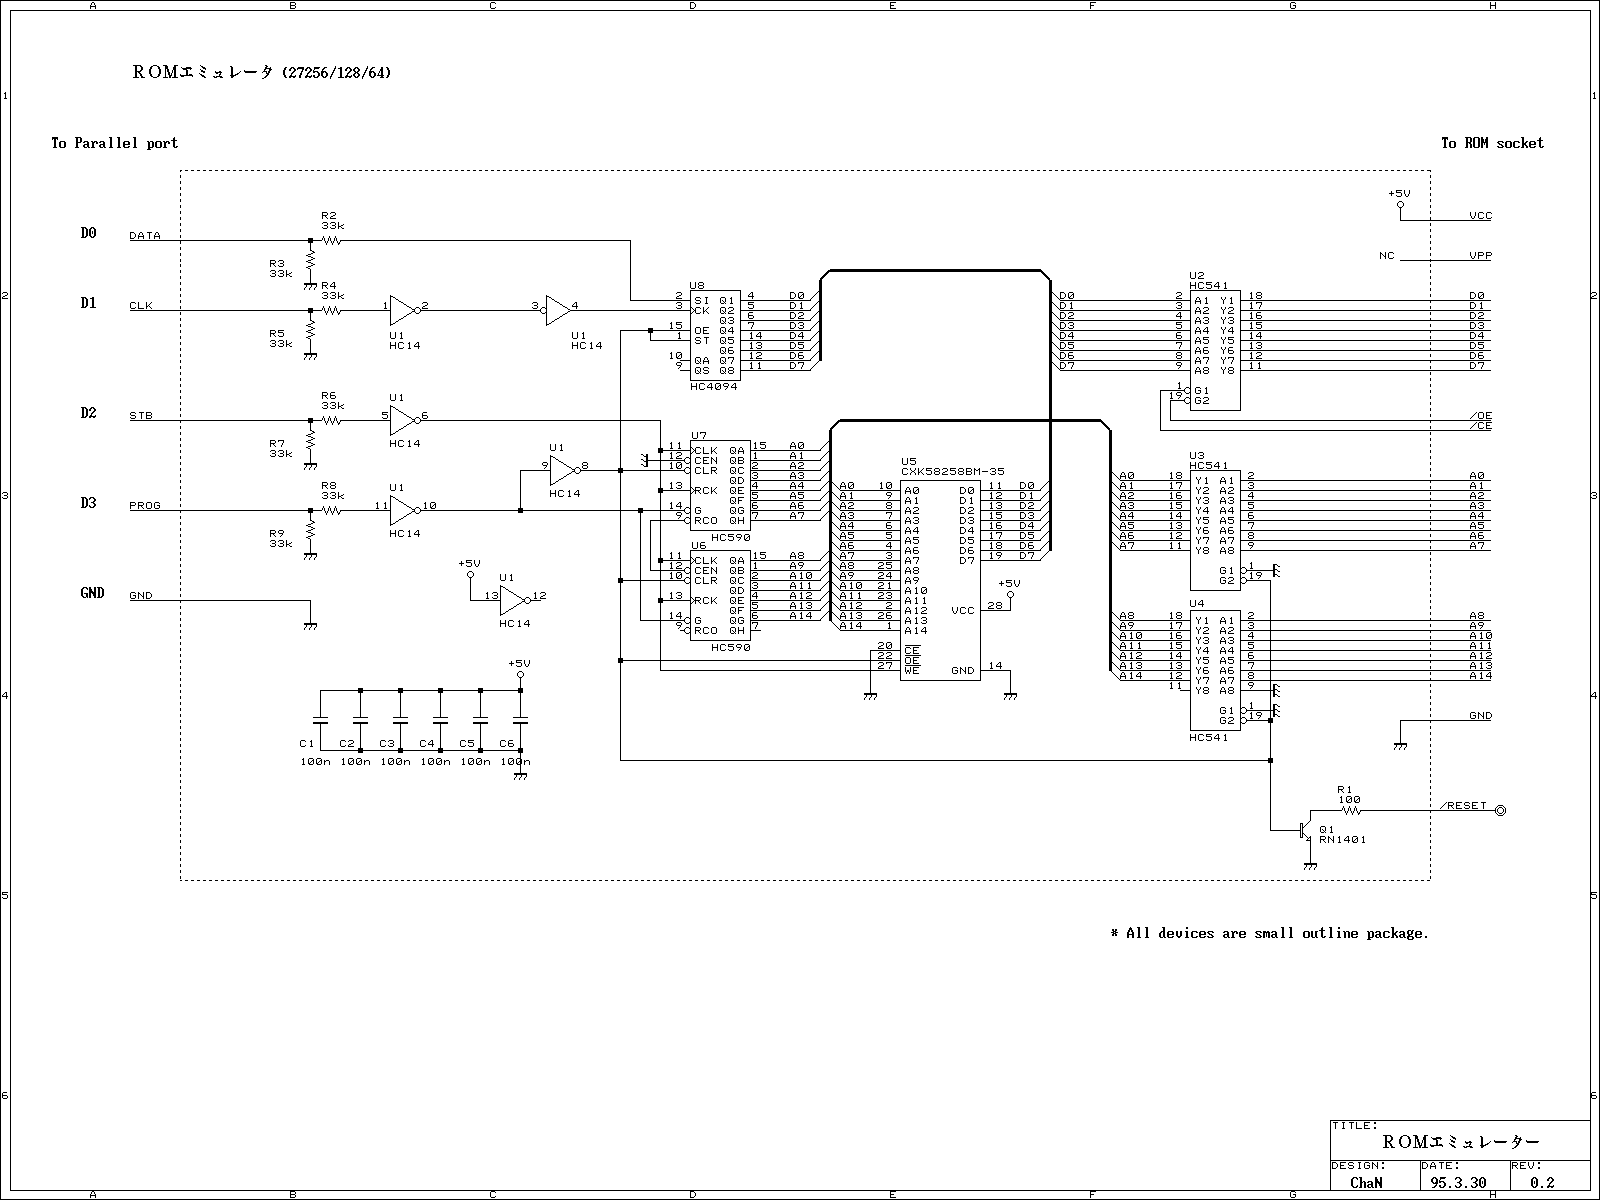 PC ROM emulator circuit - schematic